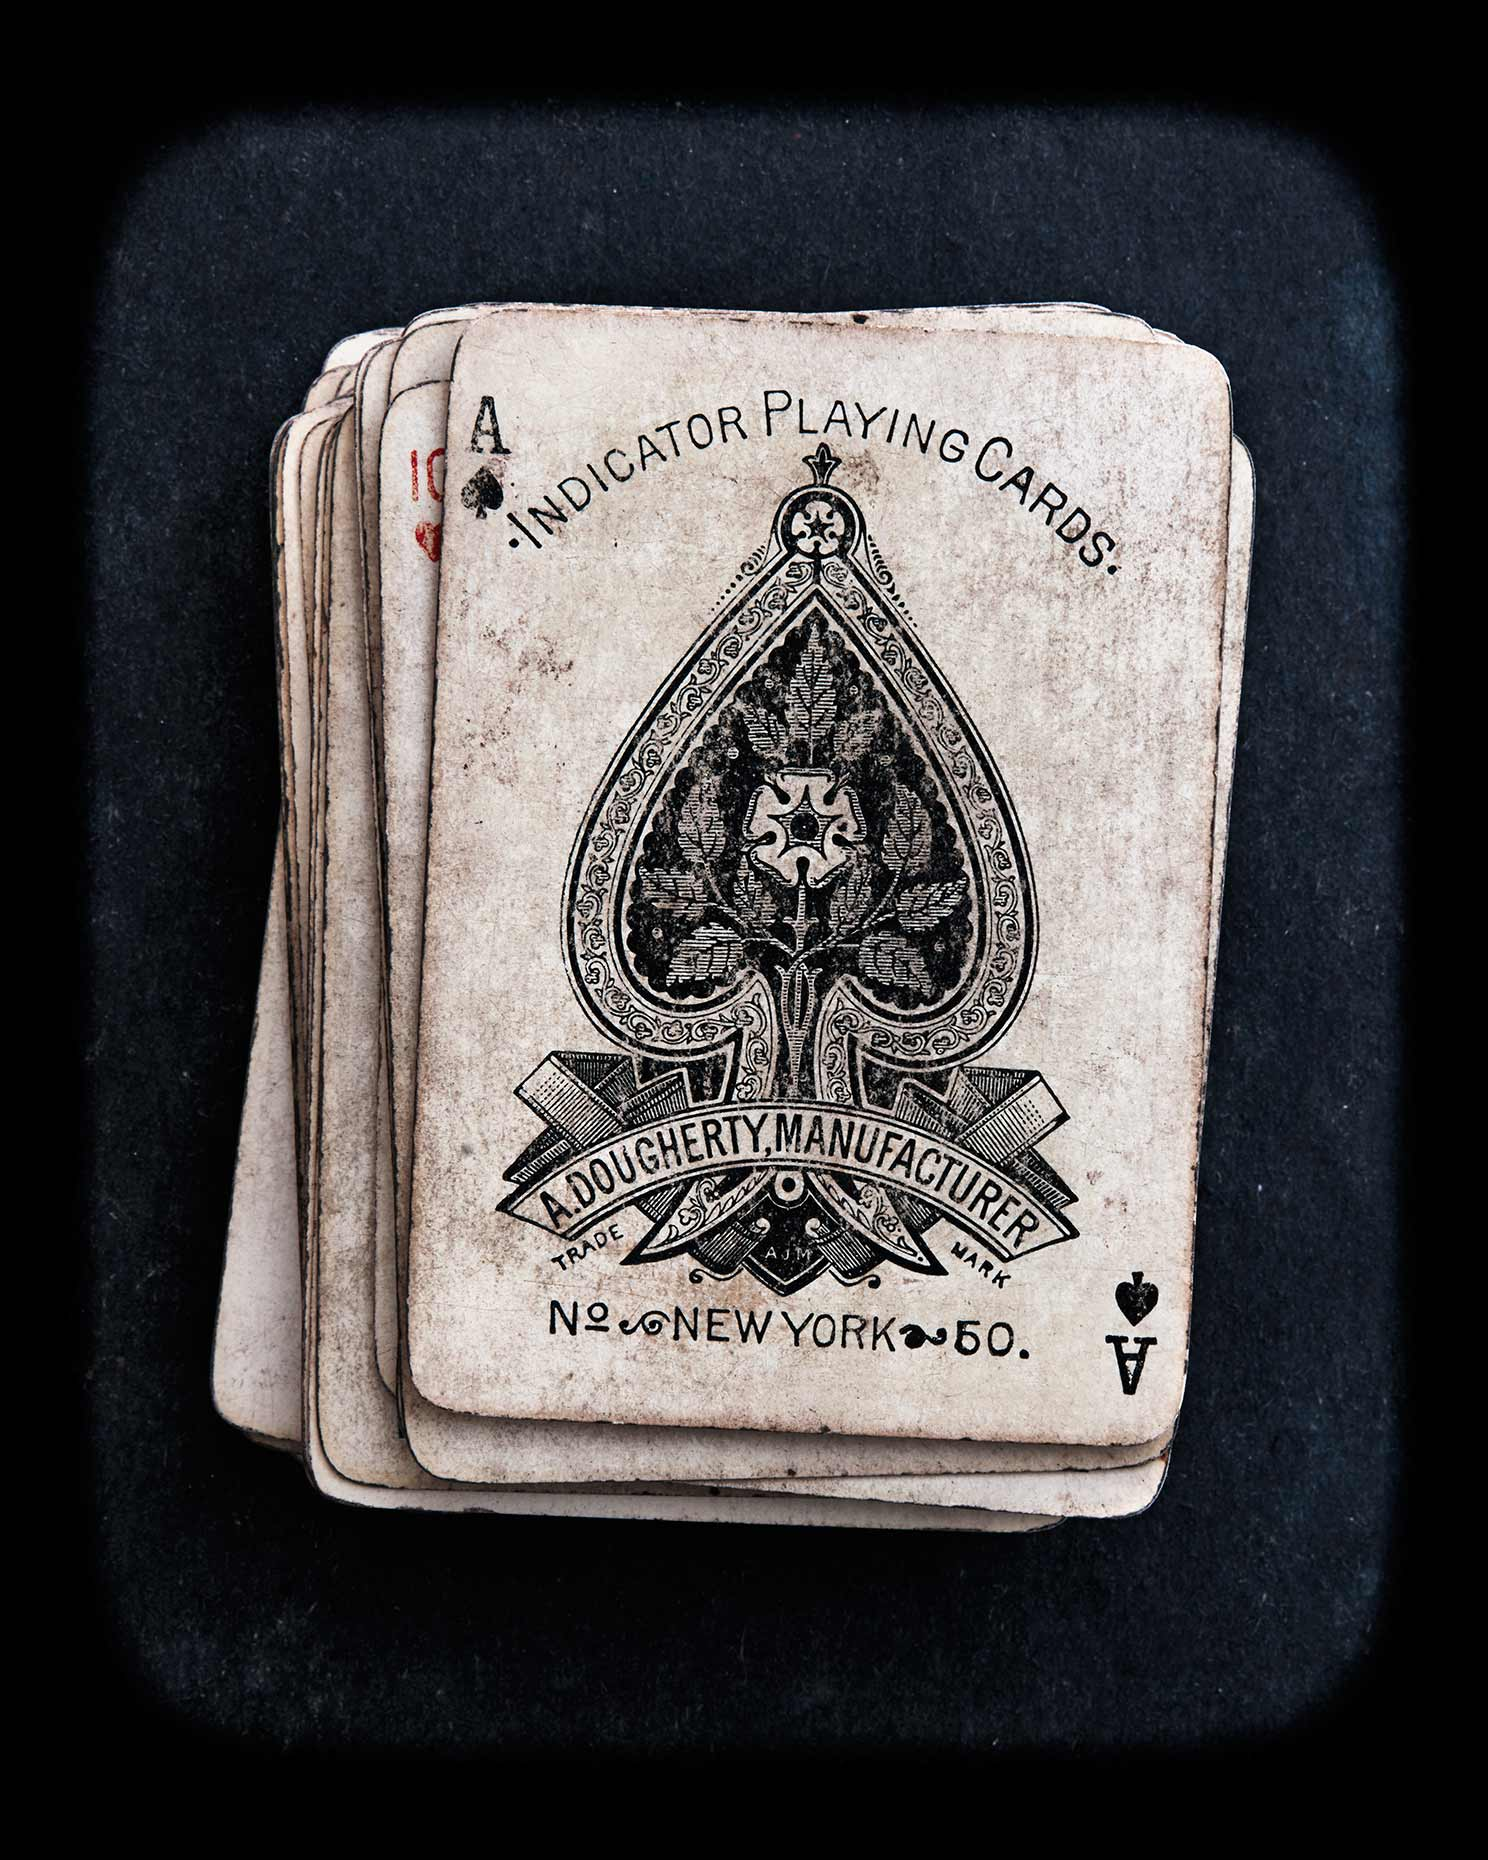 The Ace of Spades from a vintage card deck.